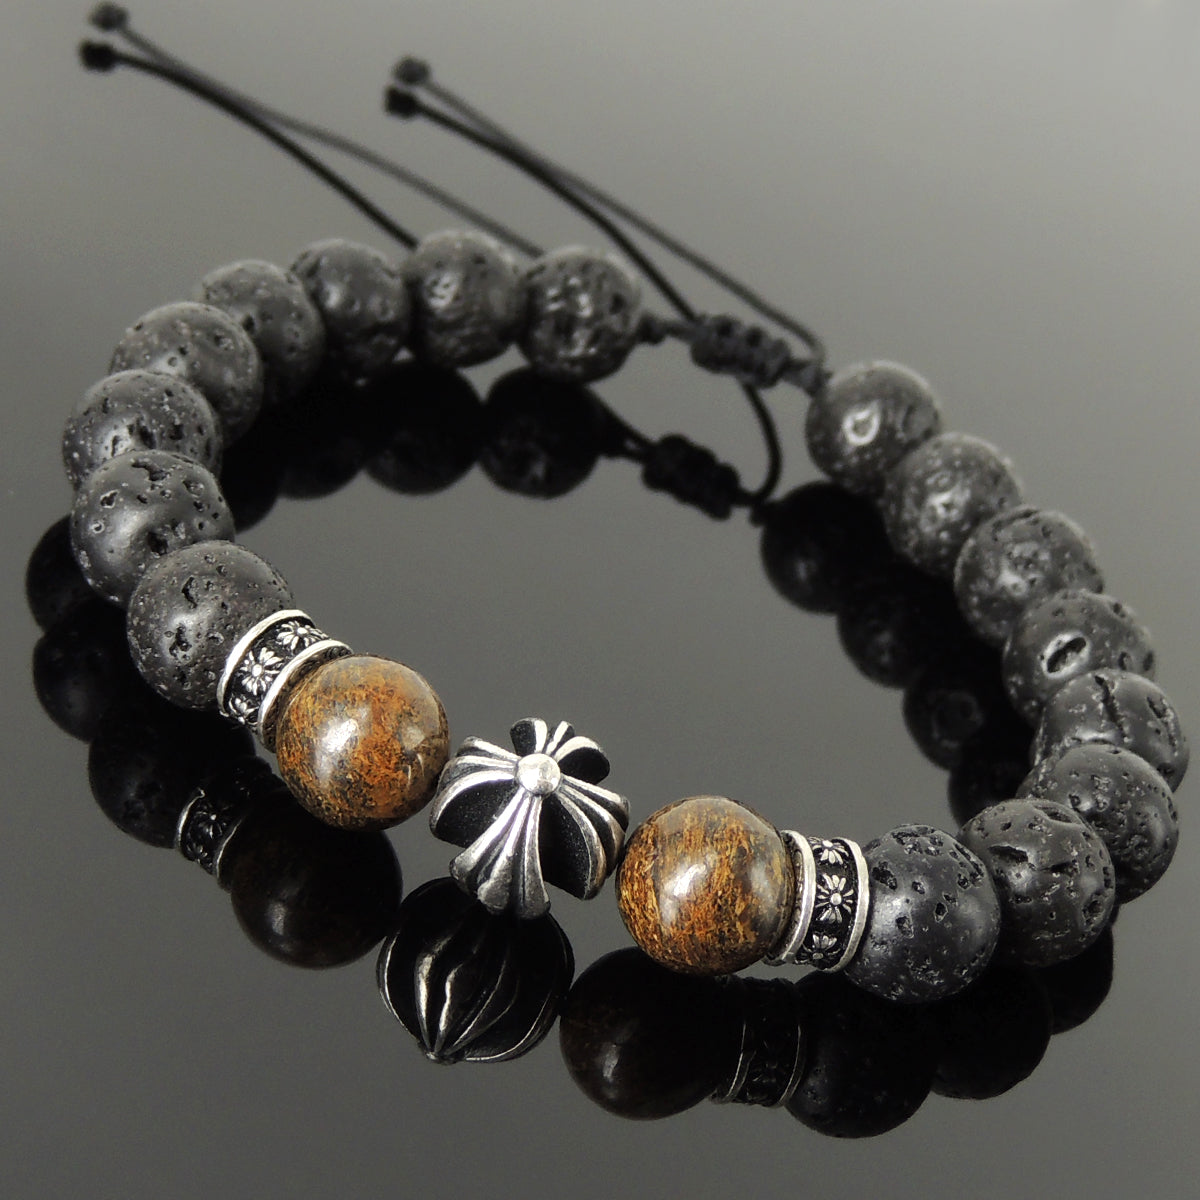 Handmade Braided Cross Pattern Design Bracelet - Healing Protection 10mm Bronzite Stone, Lava Rock Stone Beads, Adjustable Drawstring, & Genuine 925 Sterling Silver Parts - BR1523